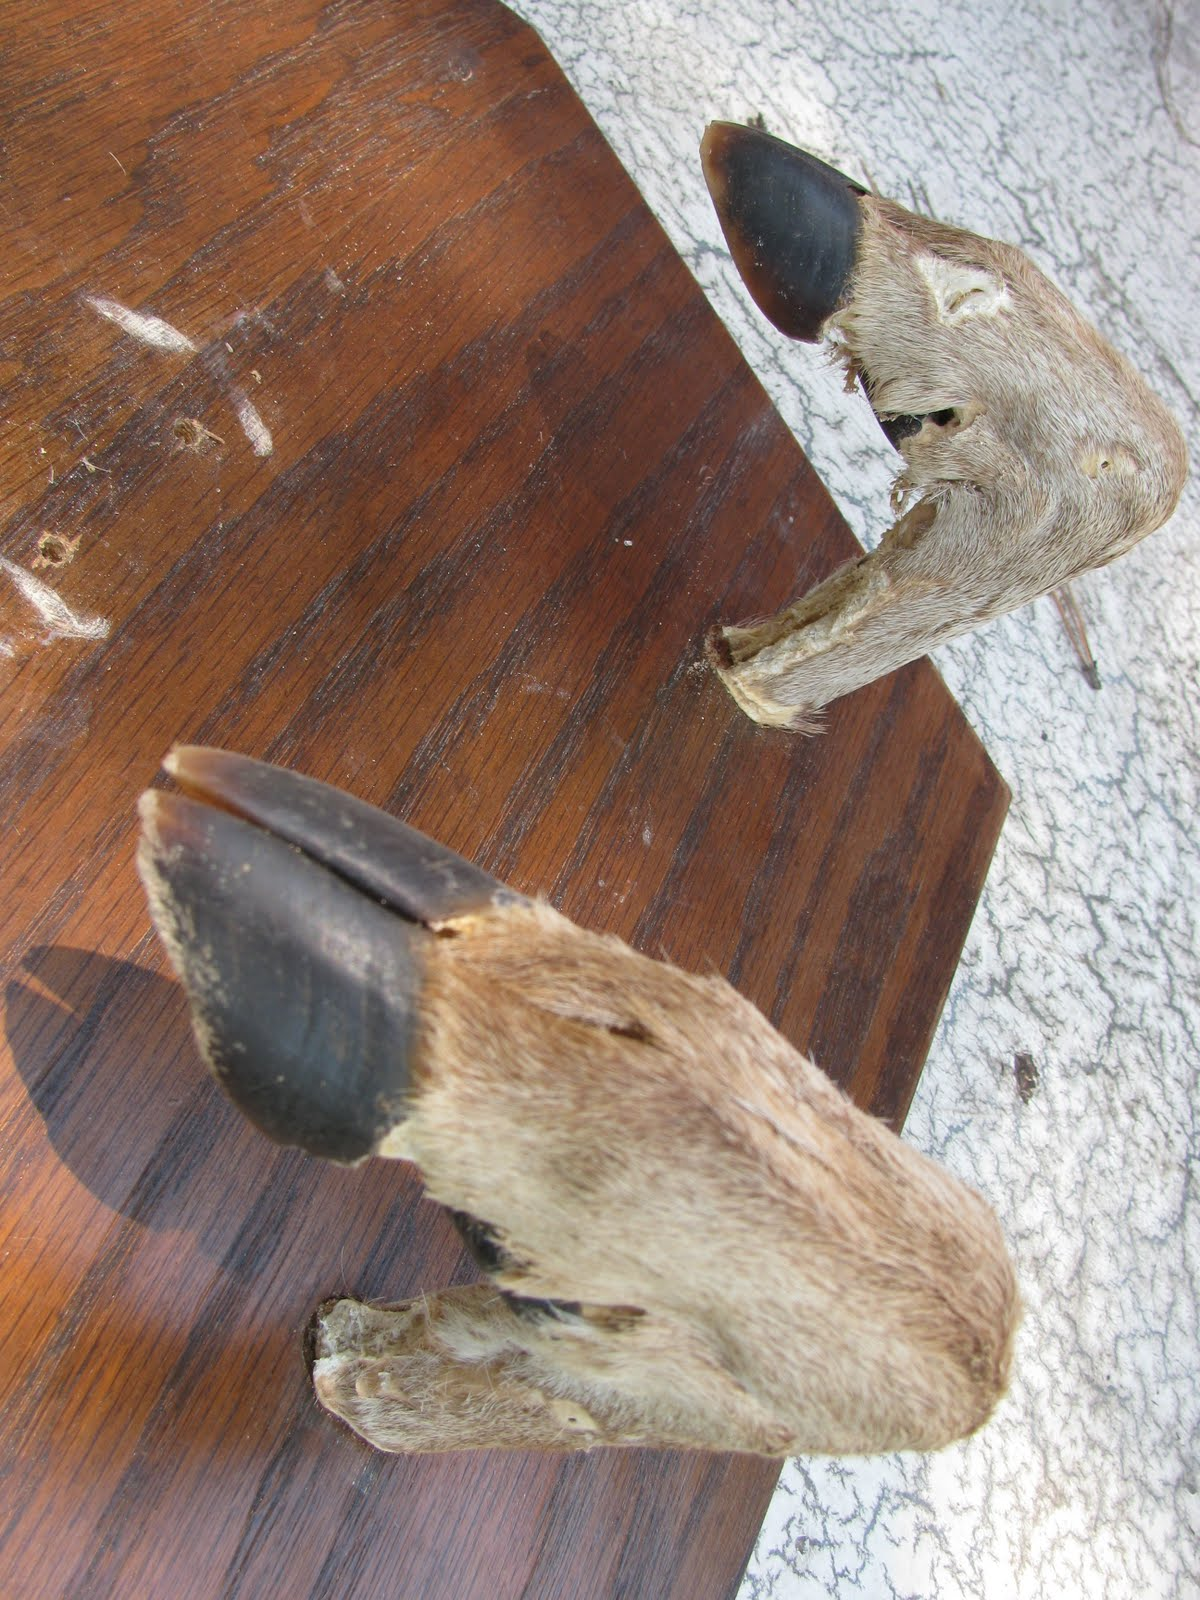 deer hooves - photo #32